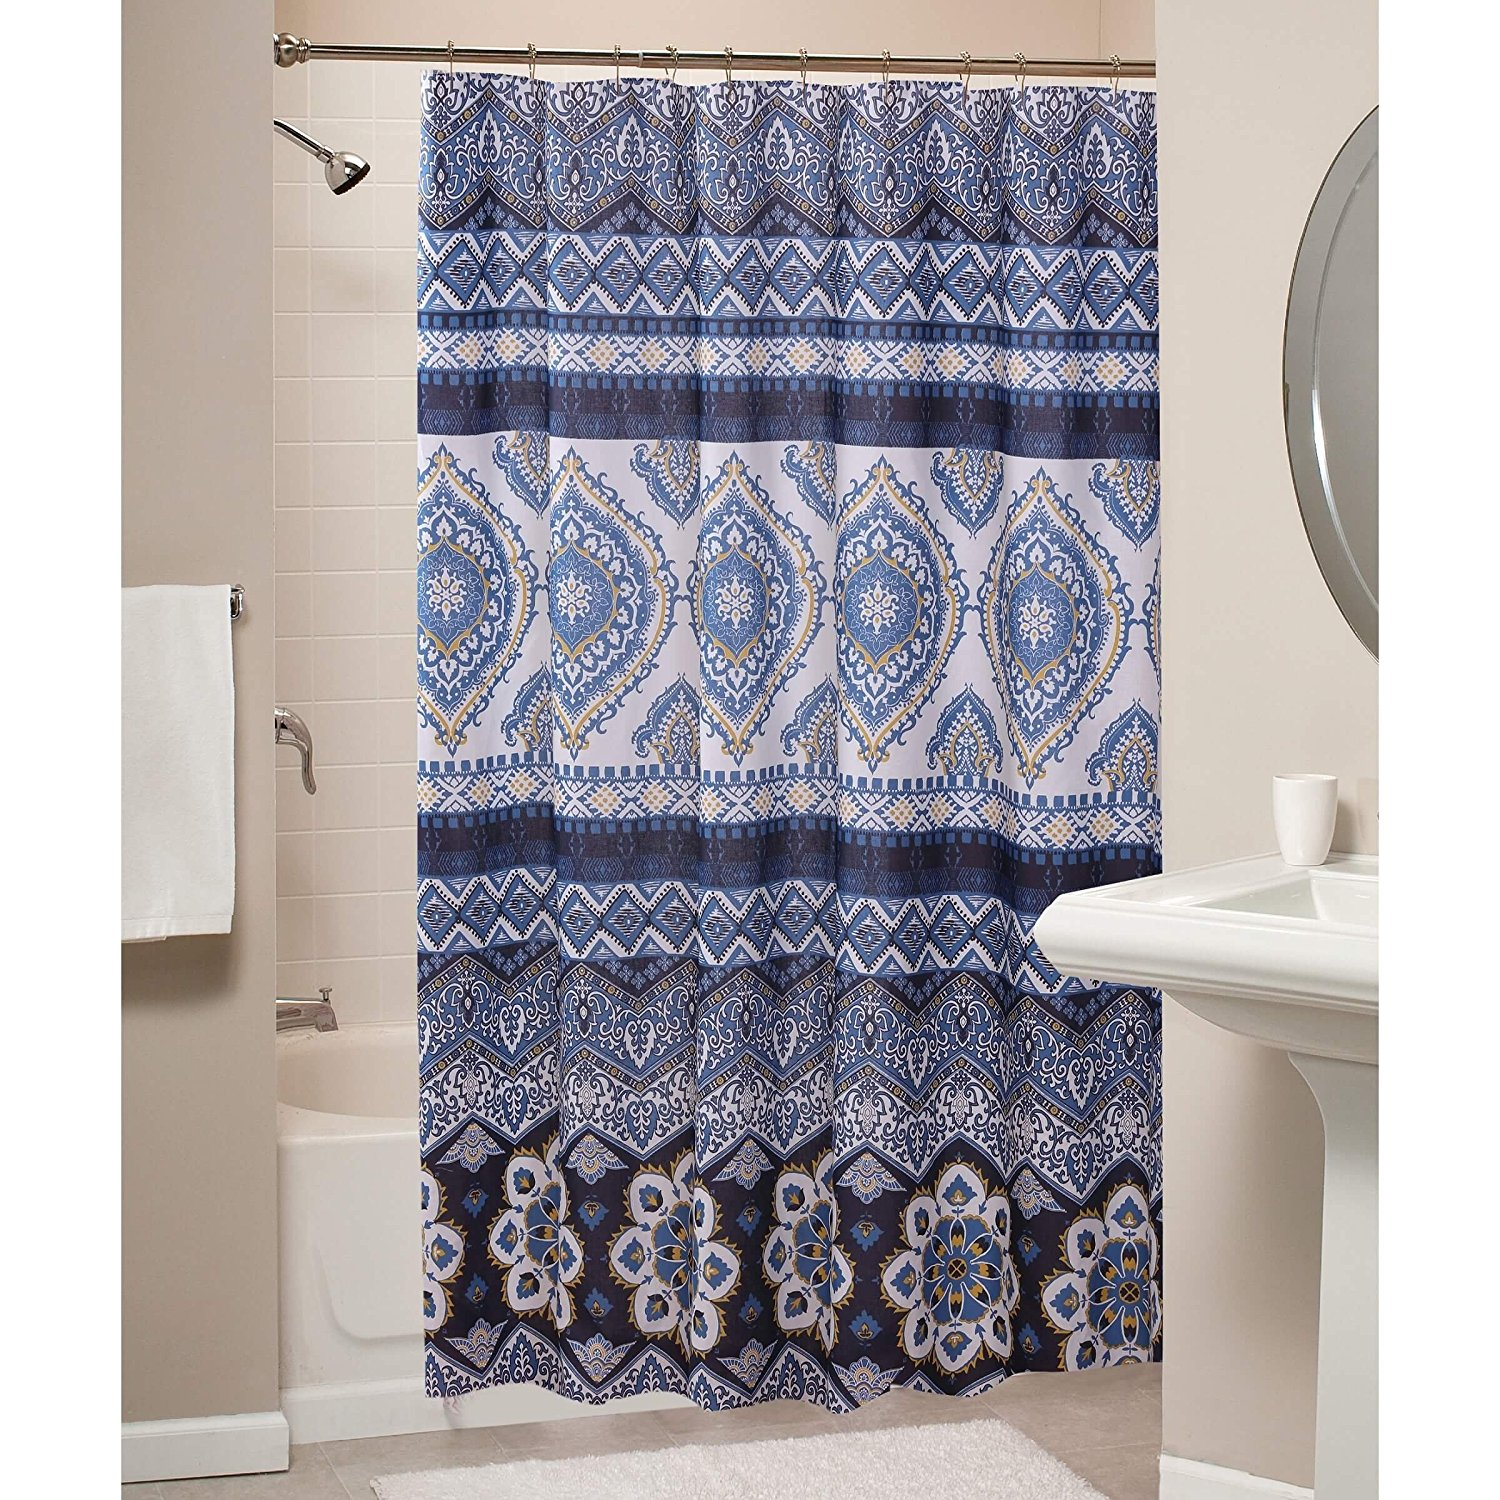 https guide alibaba com shop boho chic moroccan paisley pattern navy blue fabric shower curtain 1006232893 html